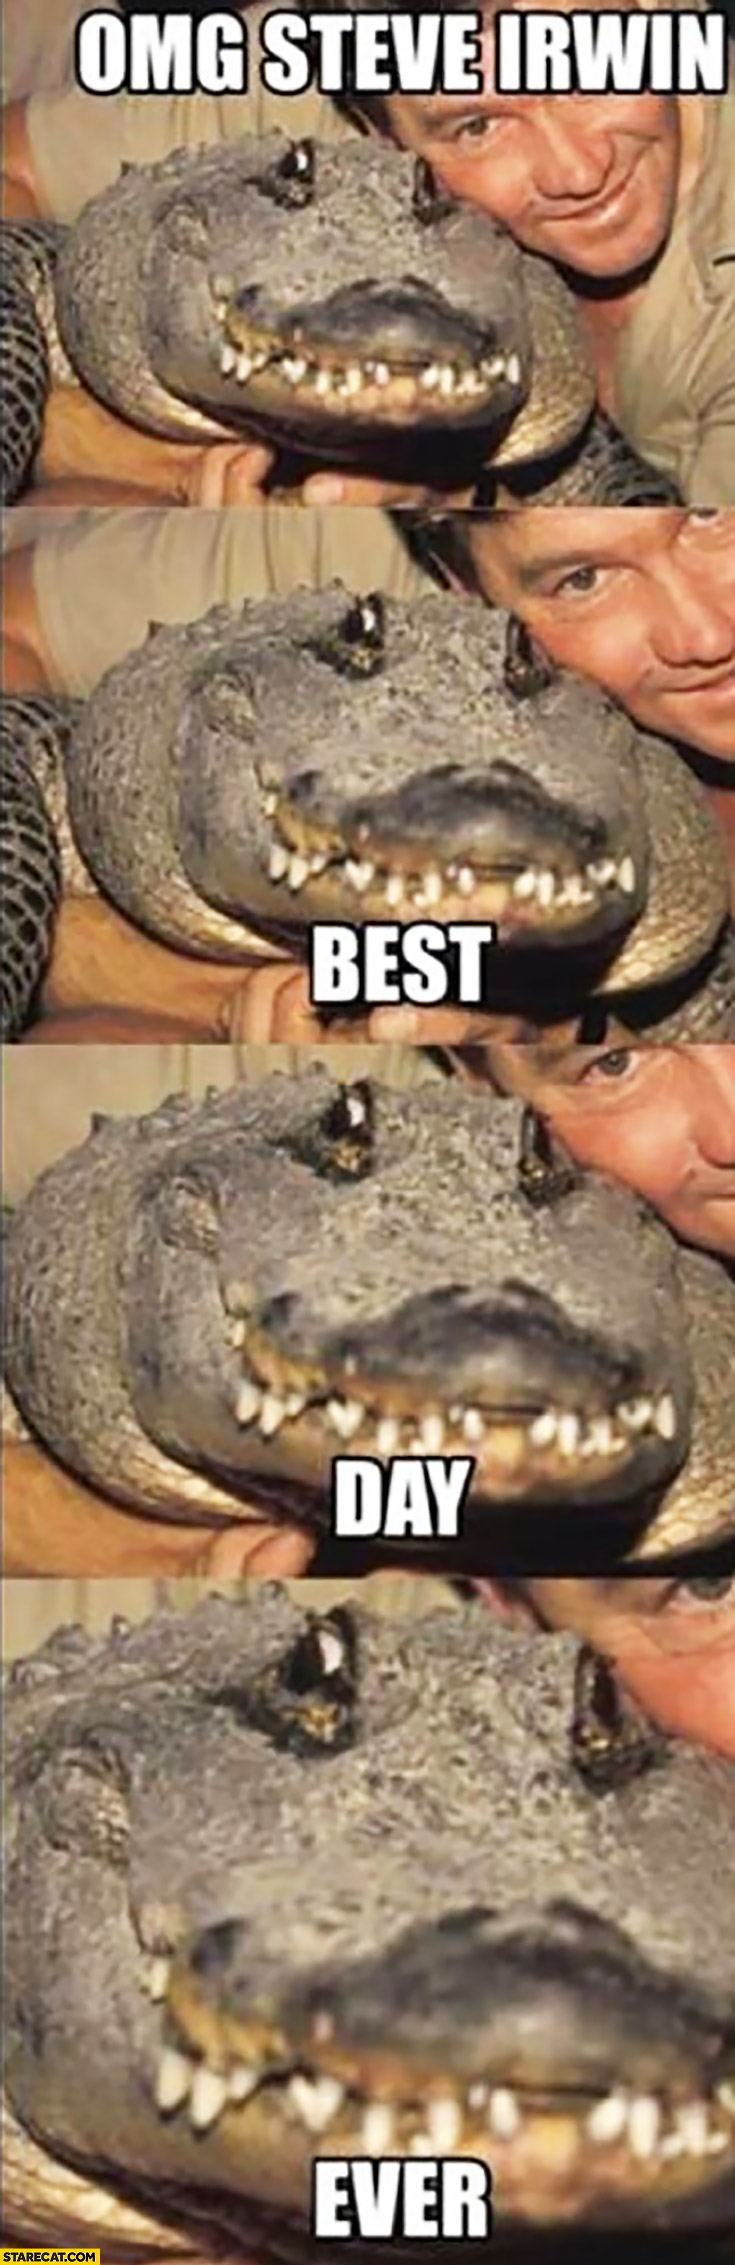 OMG Steve Irwin best day ever happy alligator crocodile